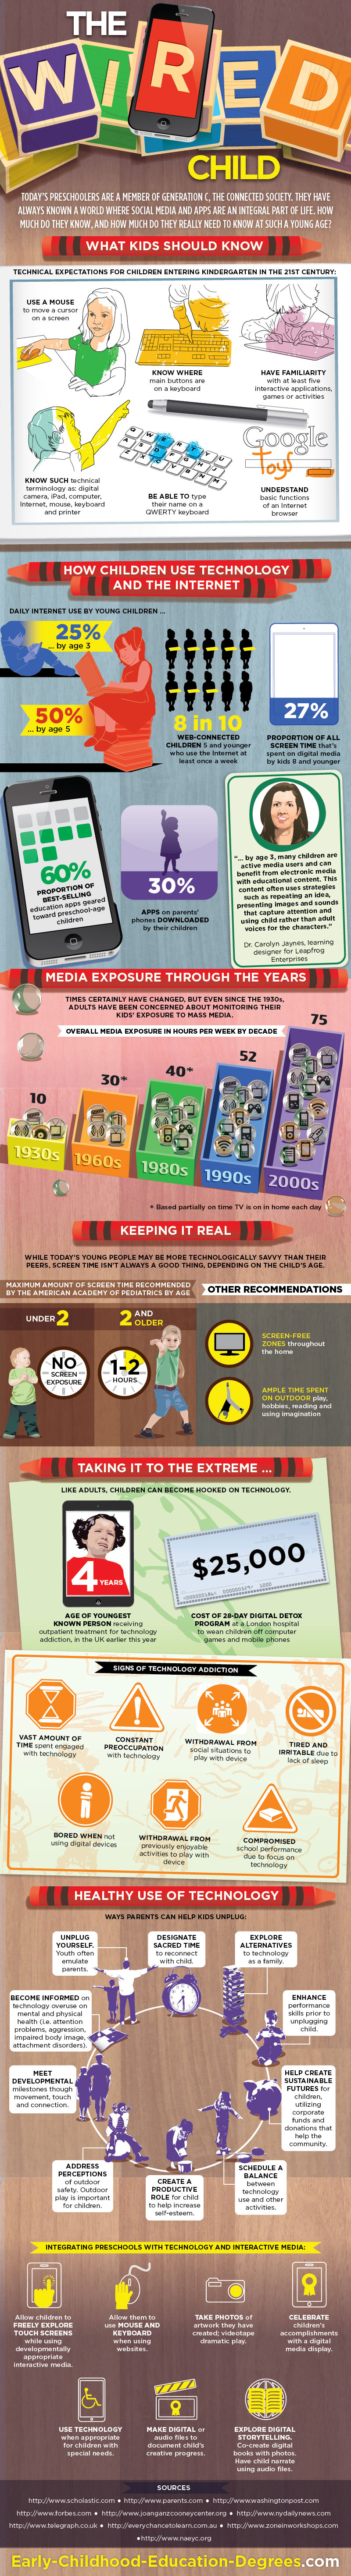 Wired Child Infographic